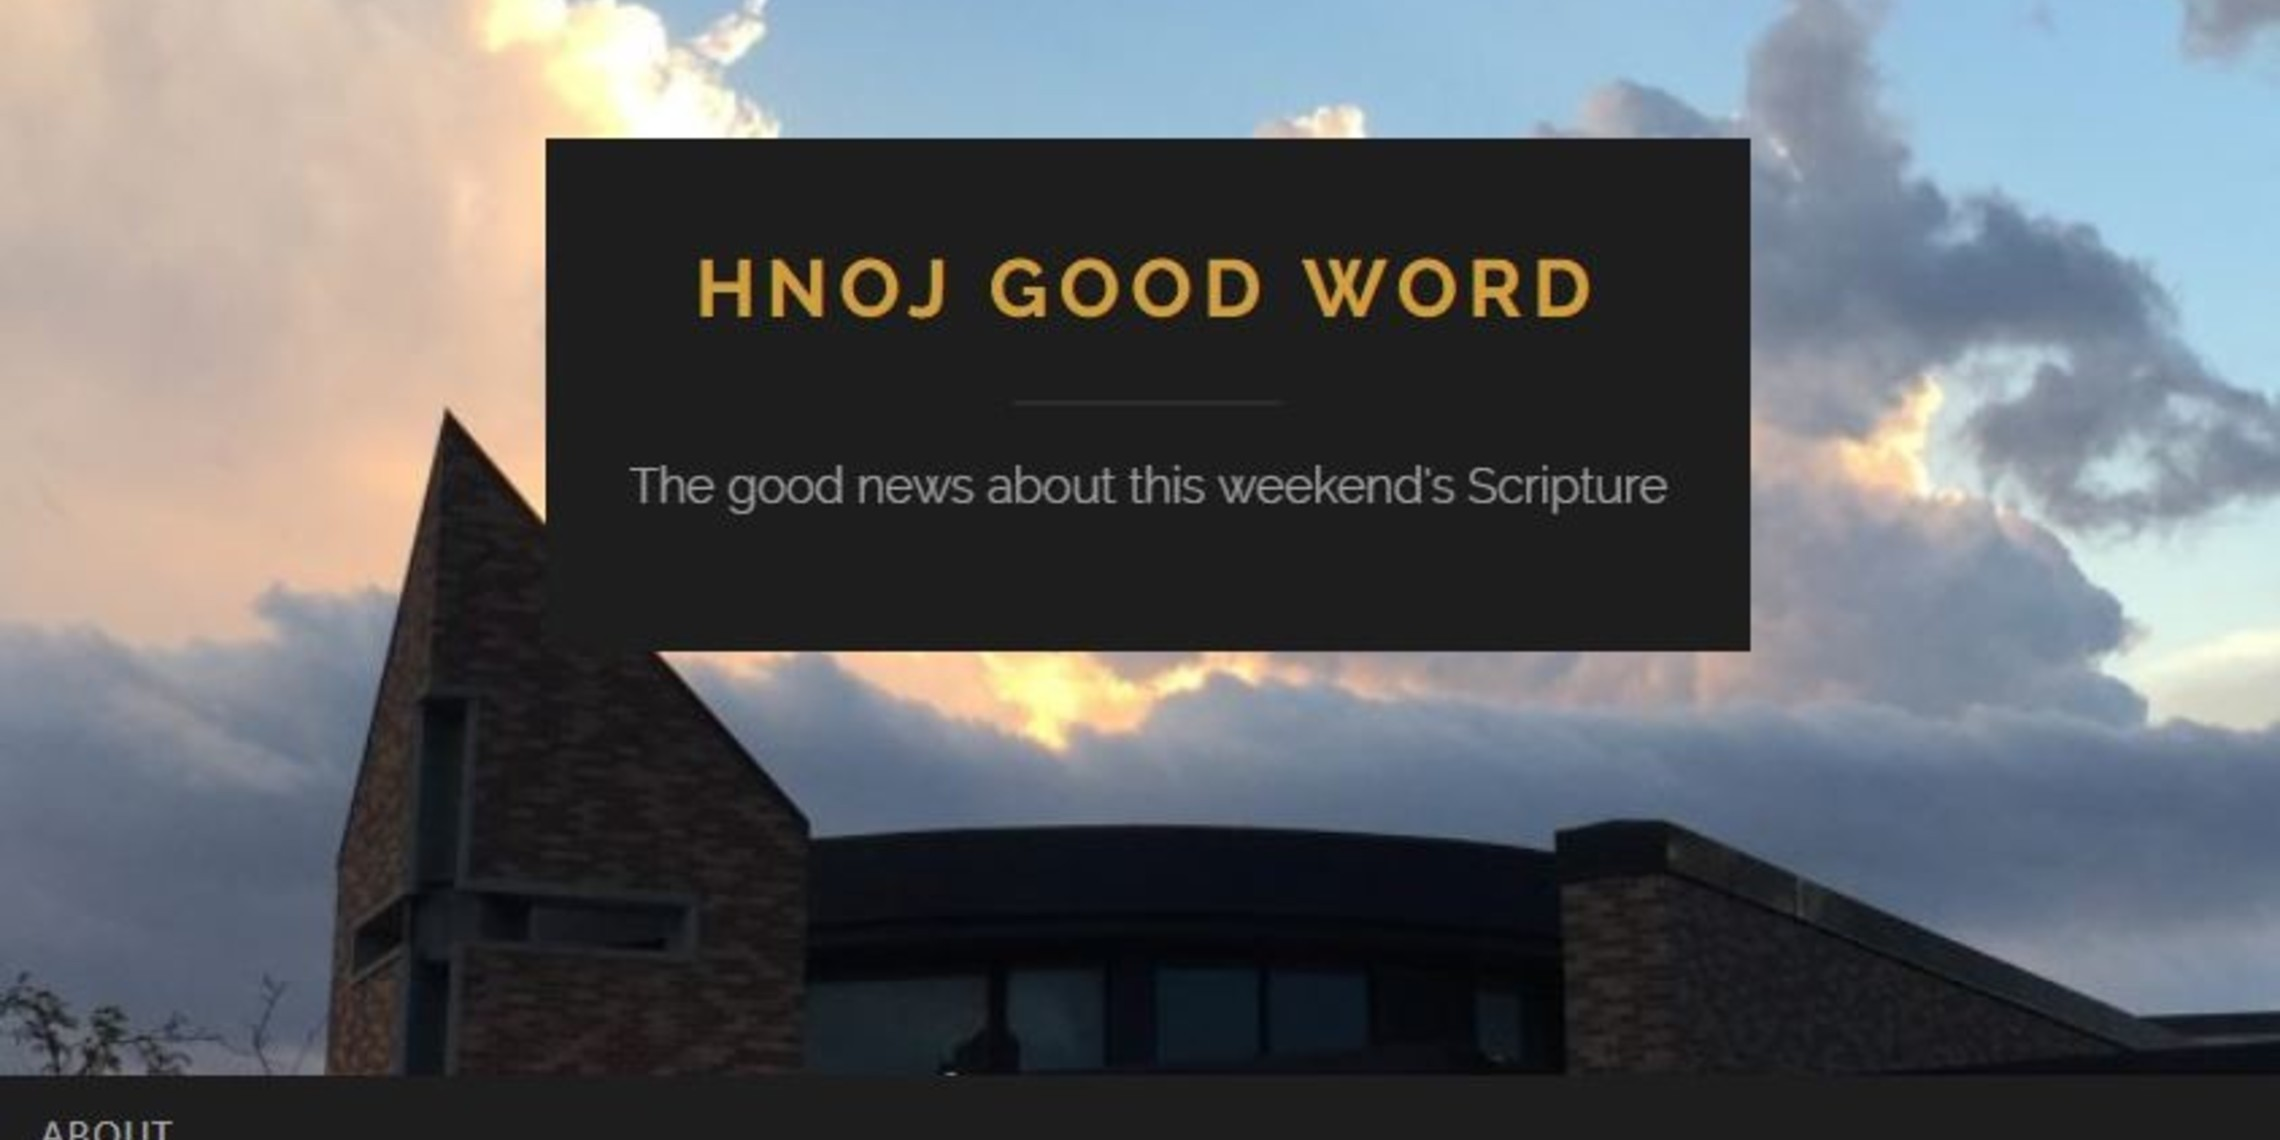 HNOJ Good Word